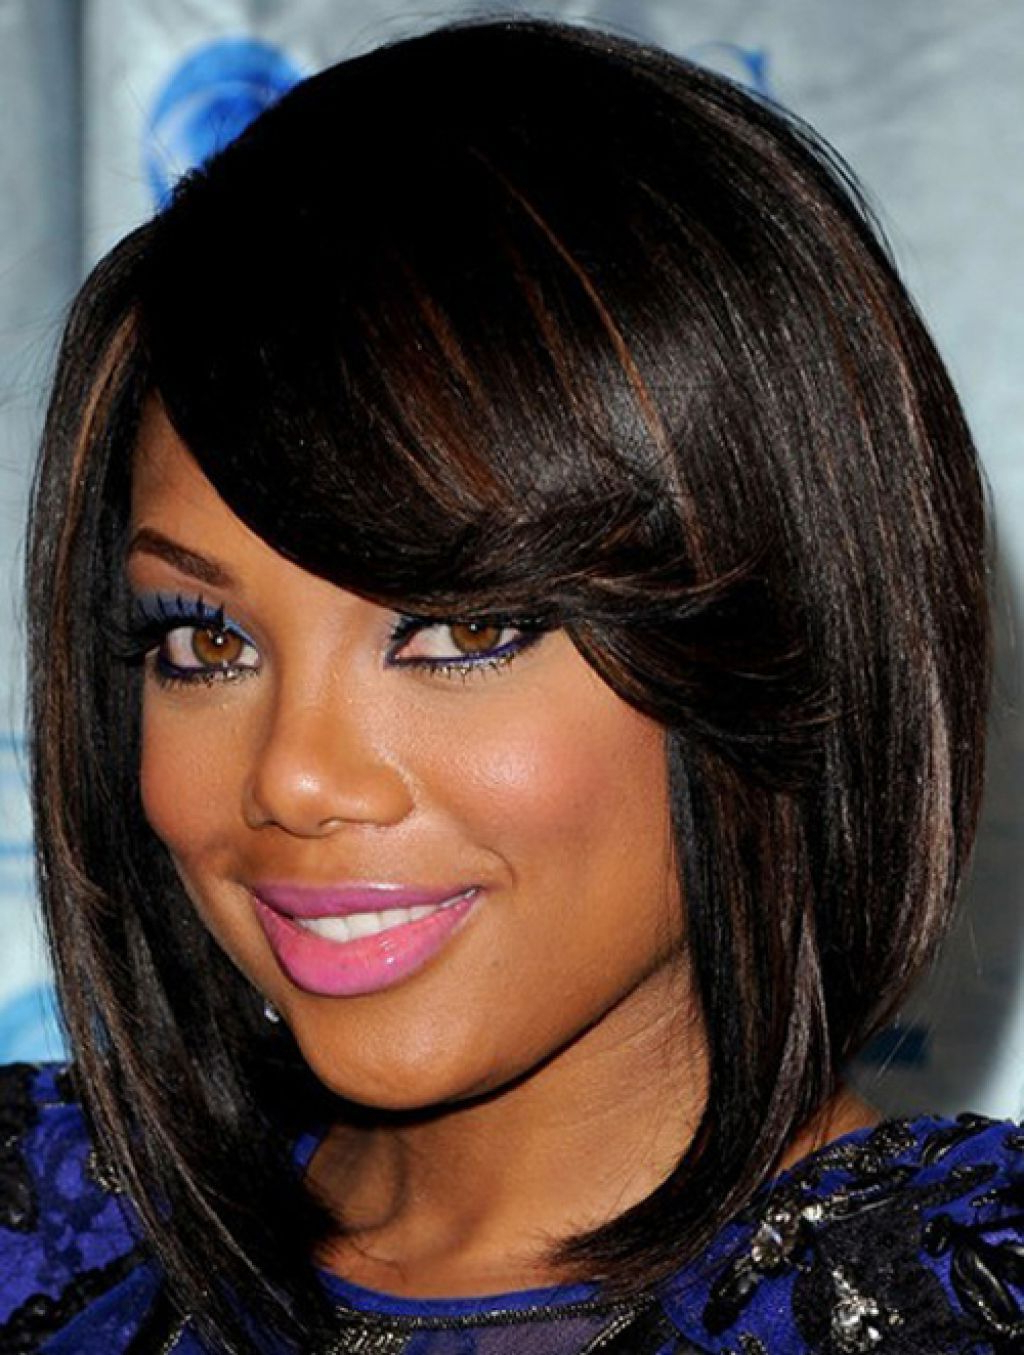 Pinwalid On Makeup   Pinterest   Hair Styles, Hair And Short Intended For Short Hairstyles For Round Faces African American (View 9 of 25)